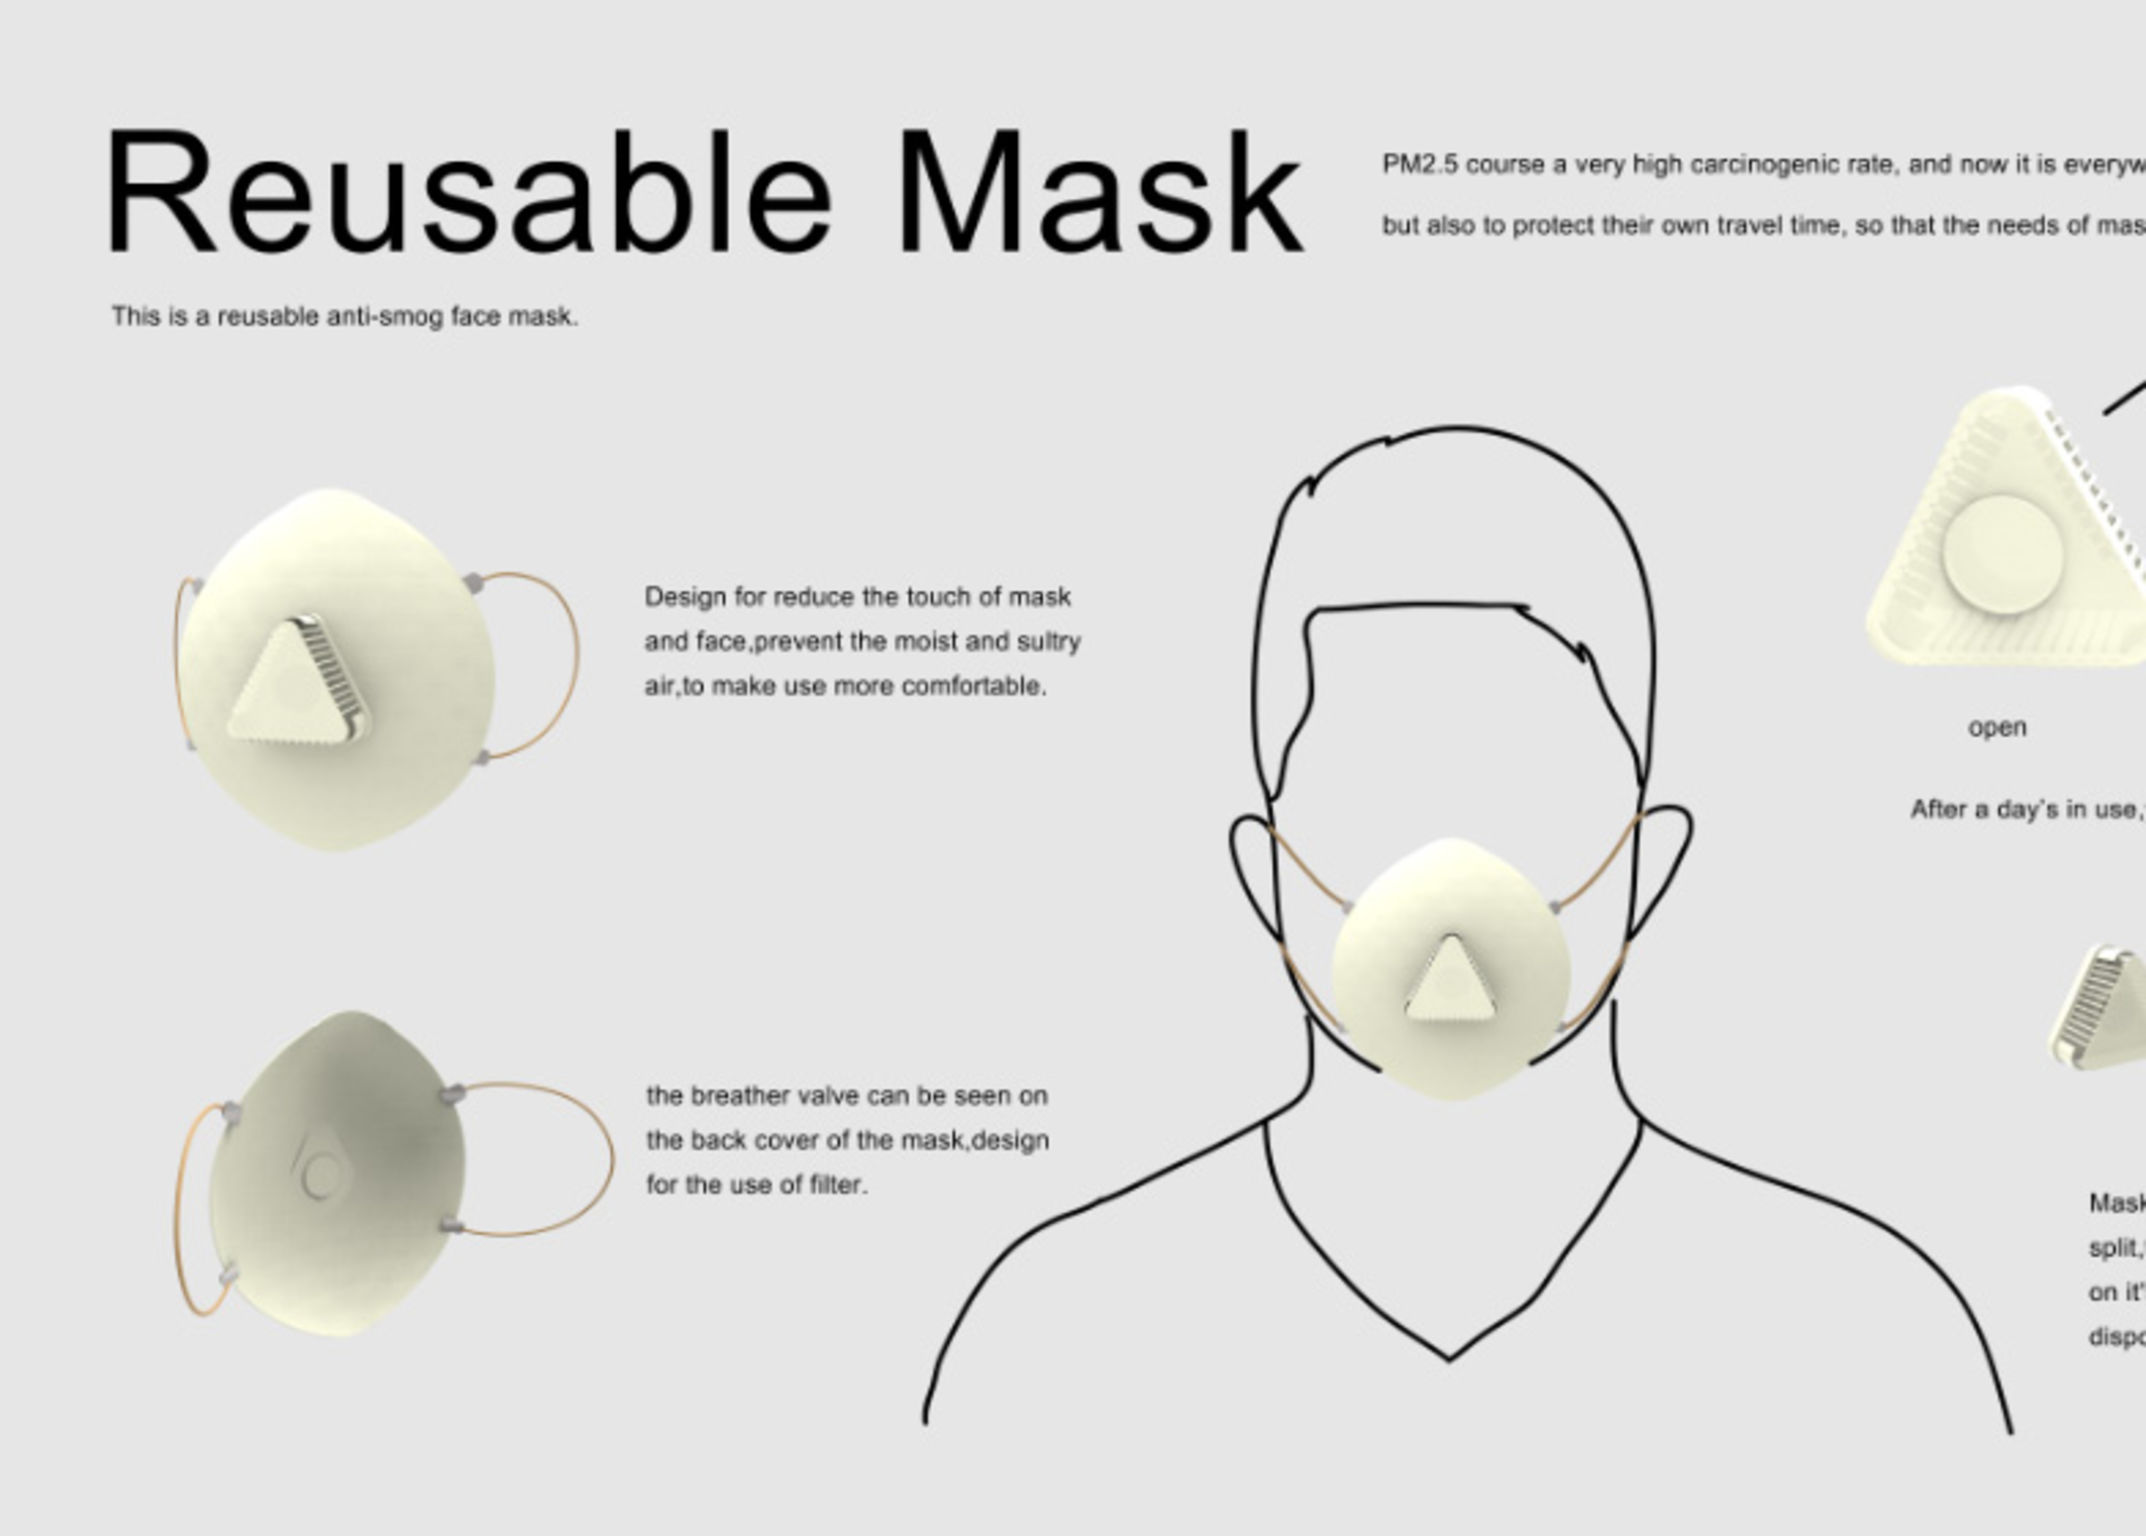 Resuable mask entry if world design guide resuable mask ccuart Gallery